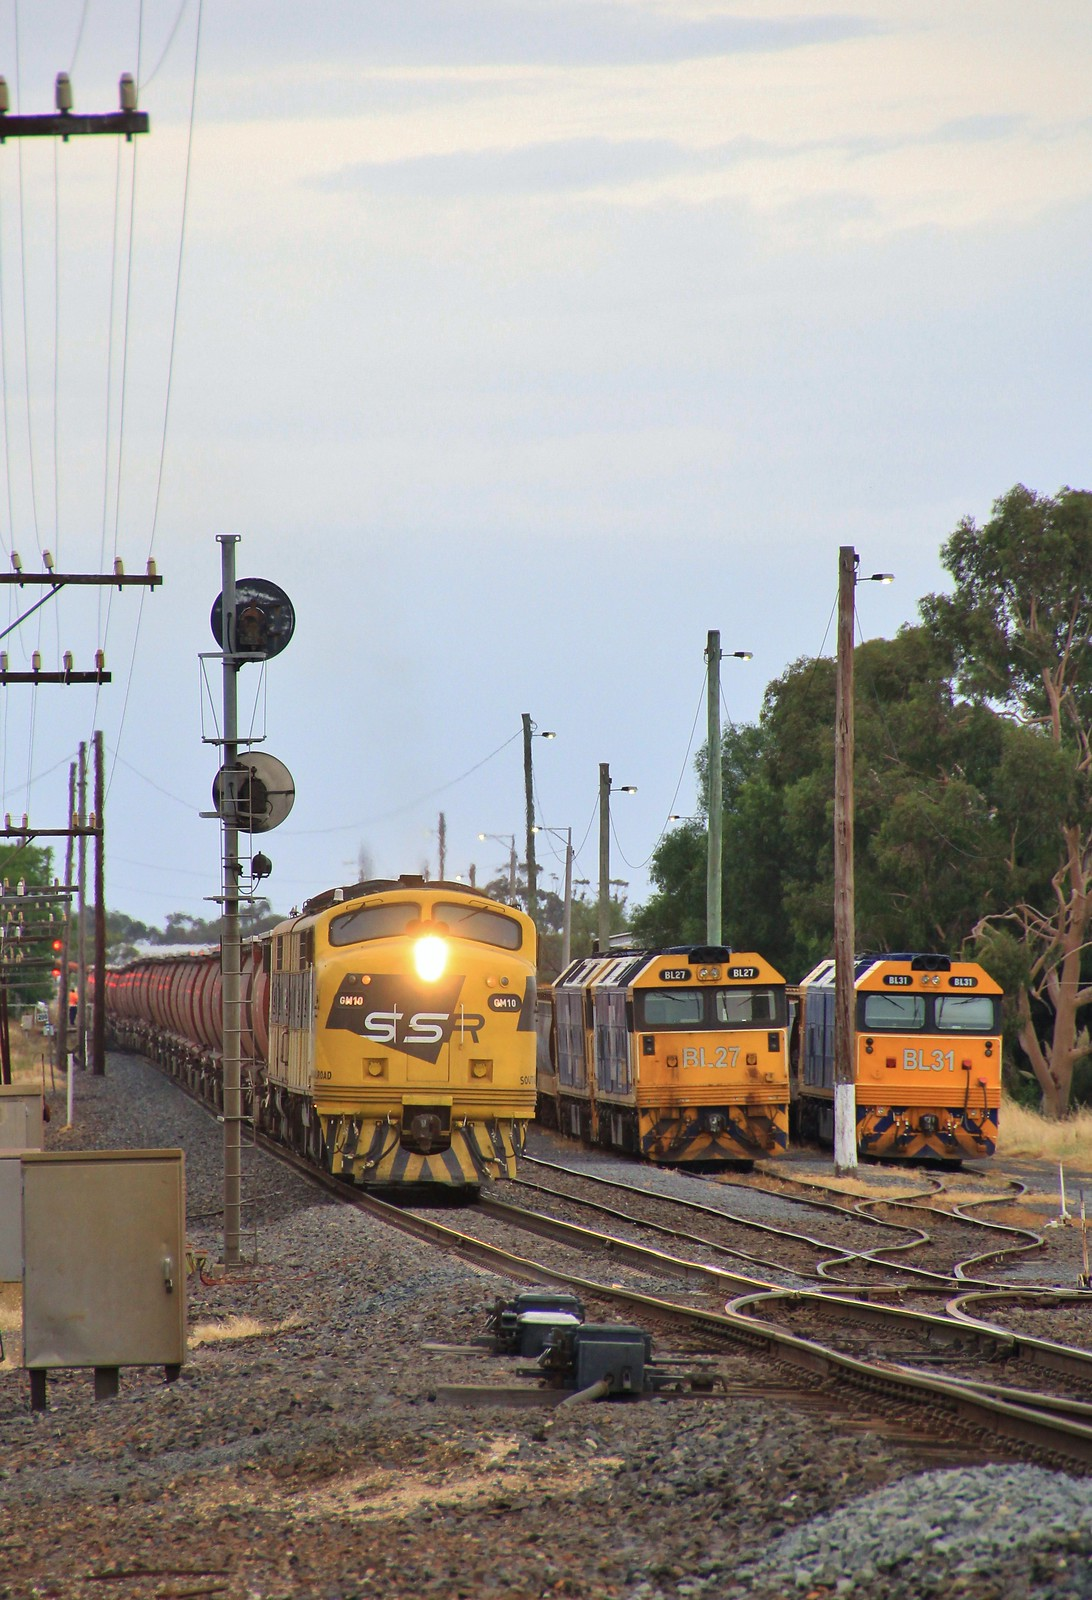 GM10 and GM22 roar past BL27 BL33 and BL31 as it lifts its load out of Murtoa yard by bukk05